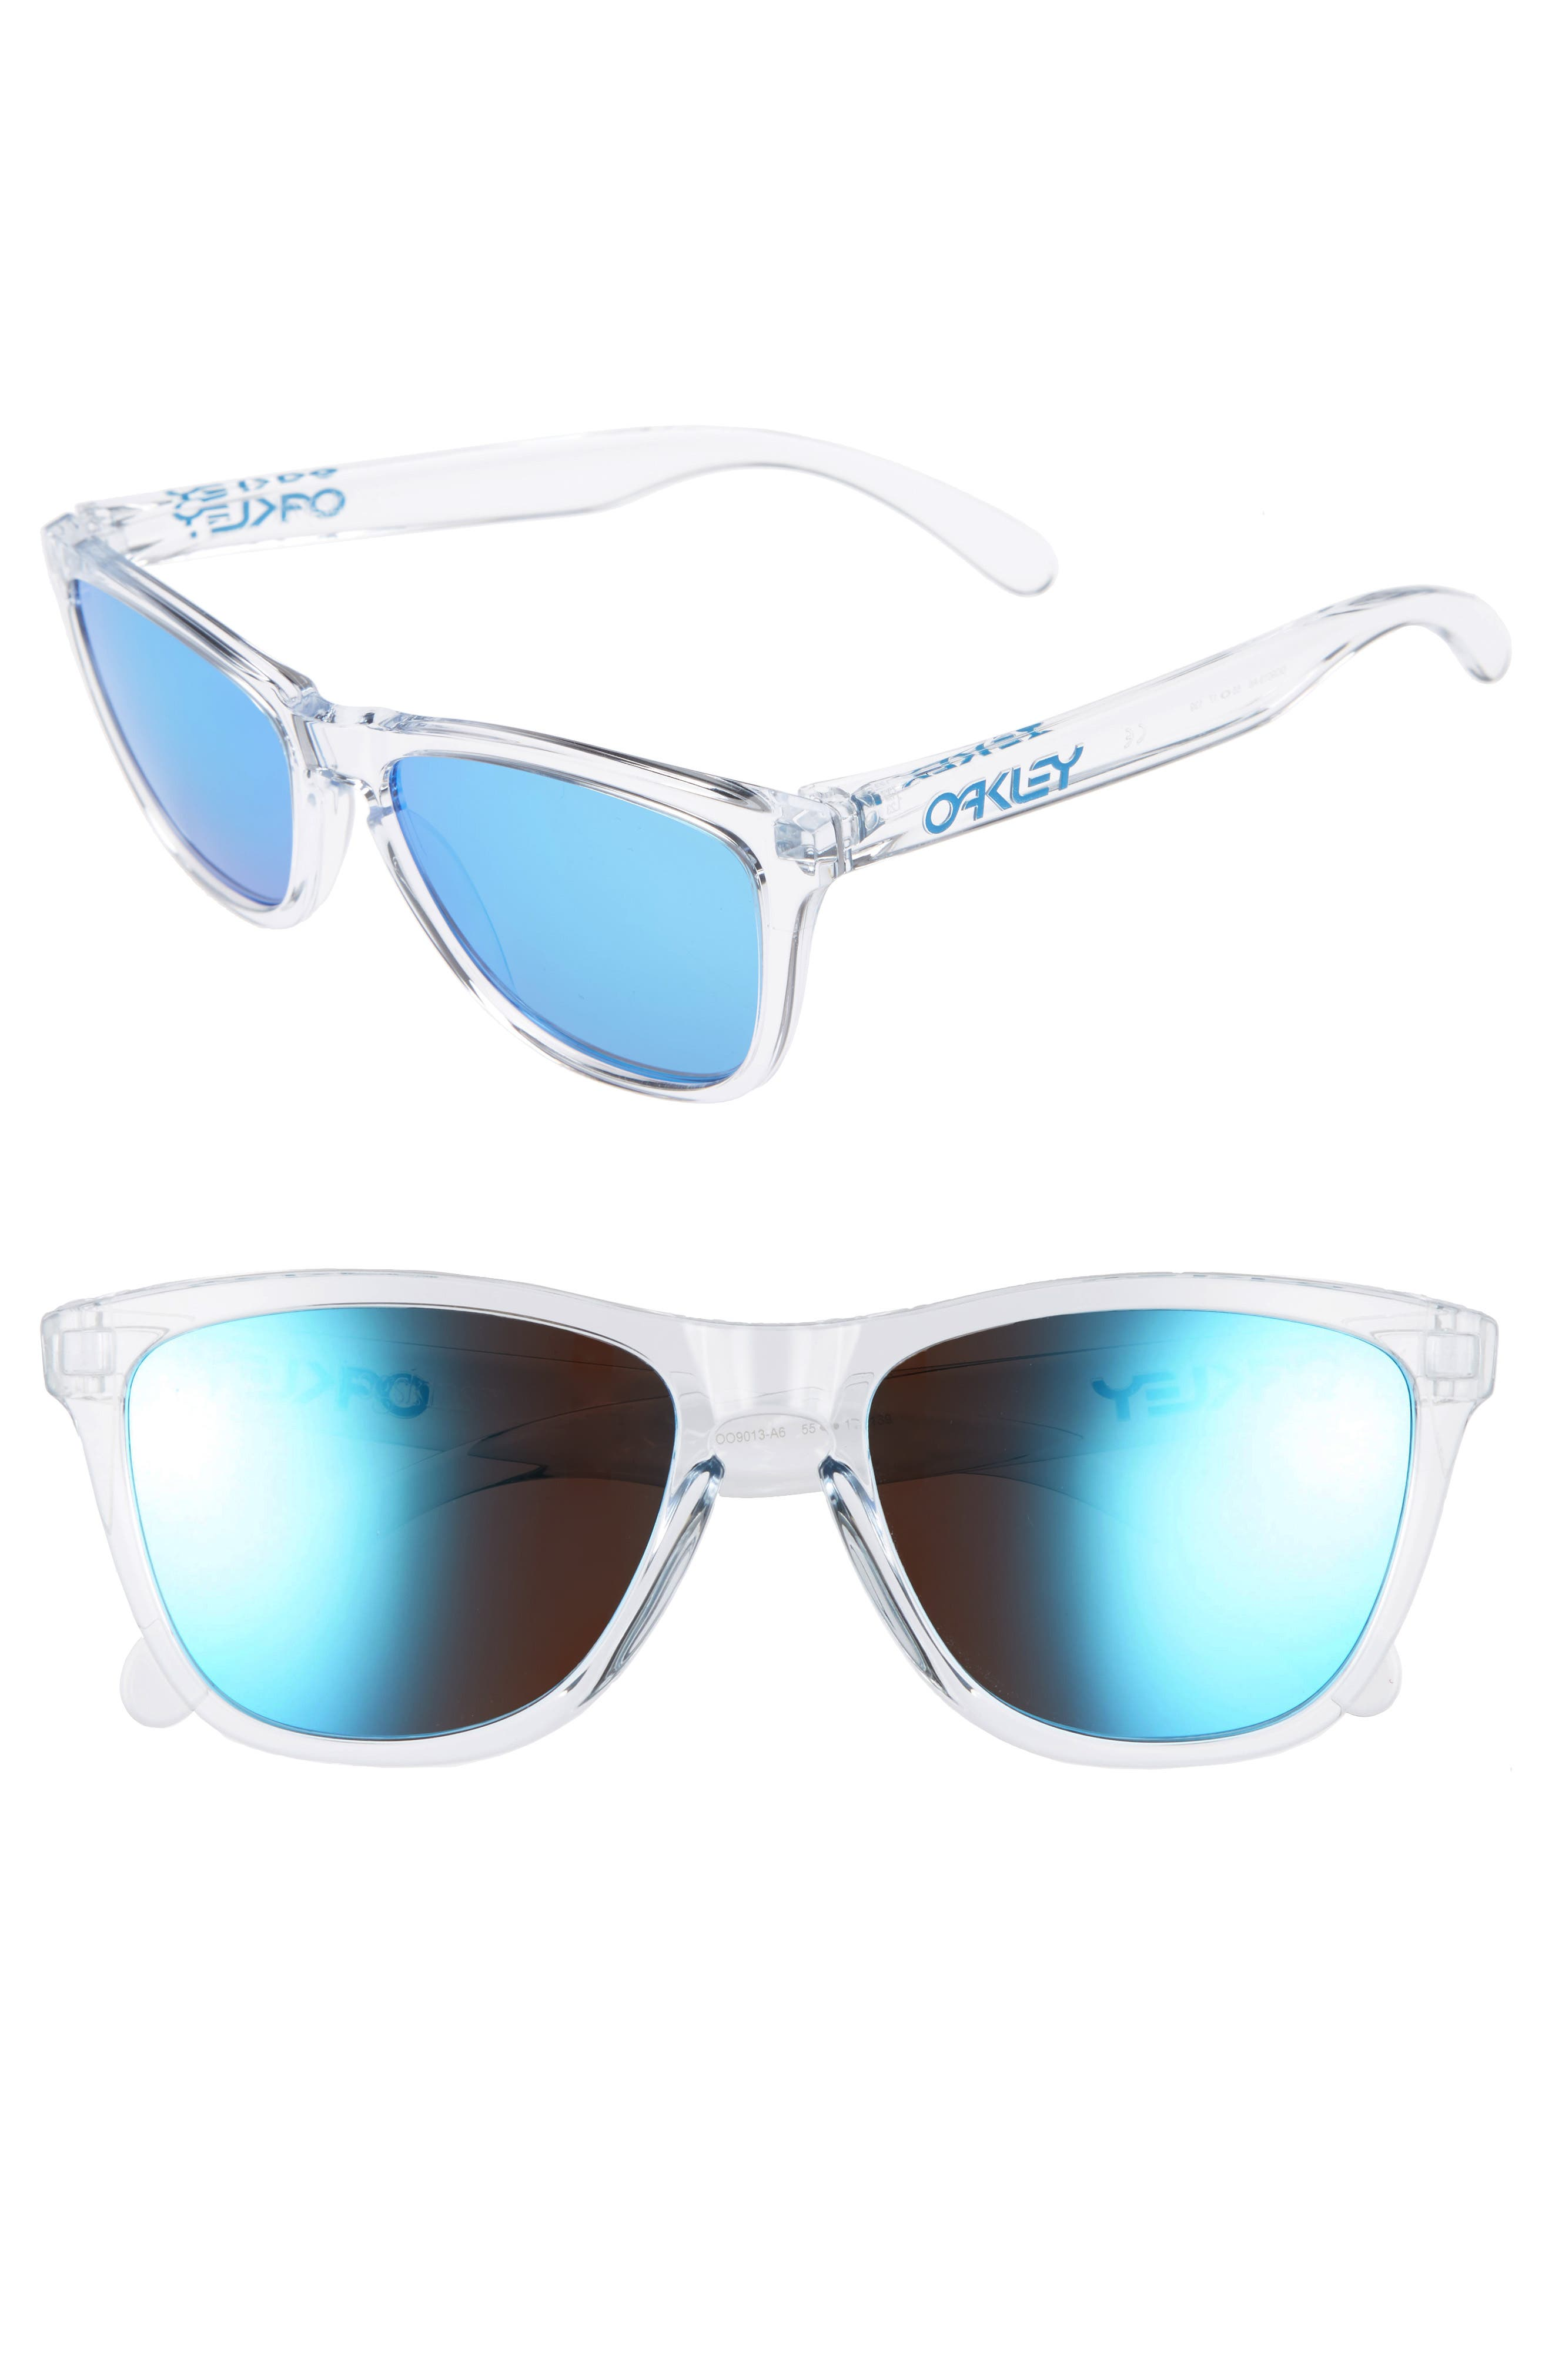 Frogskins<sup>®</sup> 55mm Sunglasses,                             Main thumbnail 1, color,                             Sapphire Iridescent